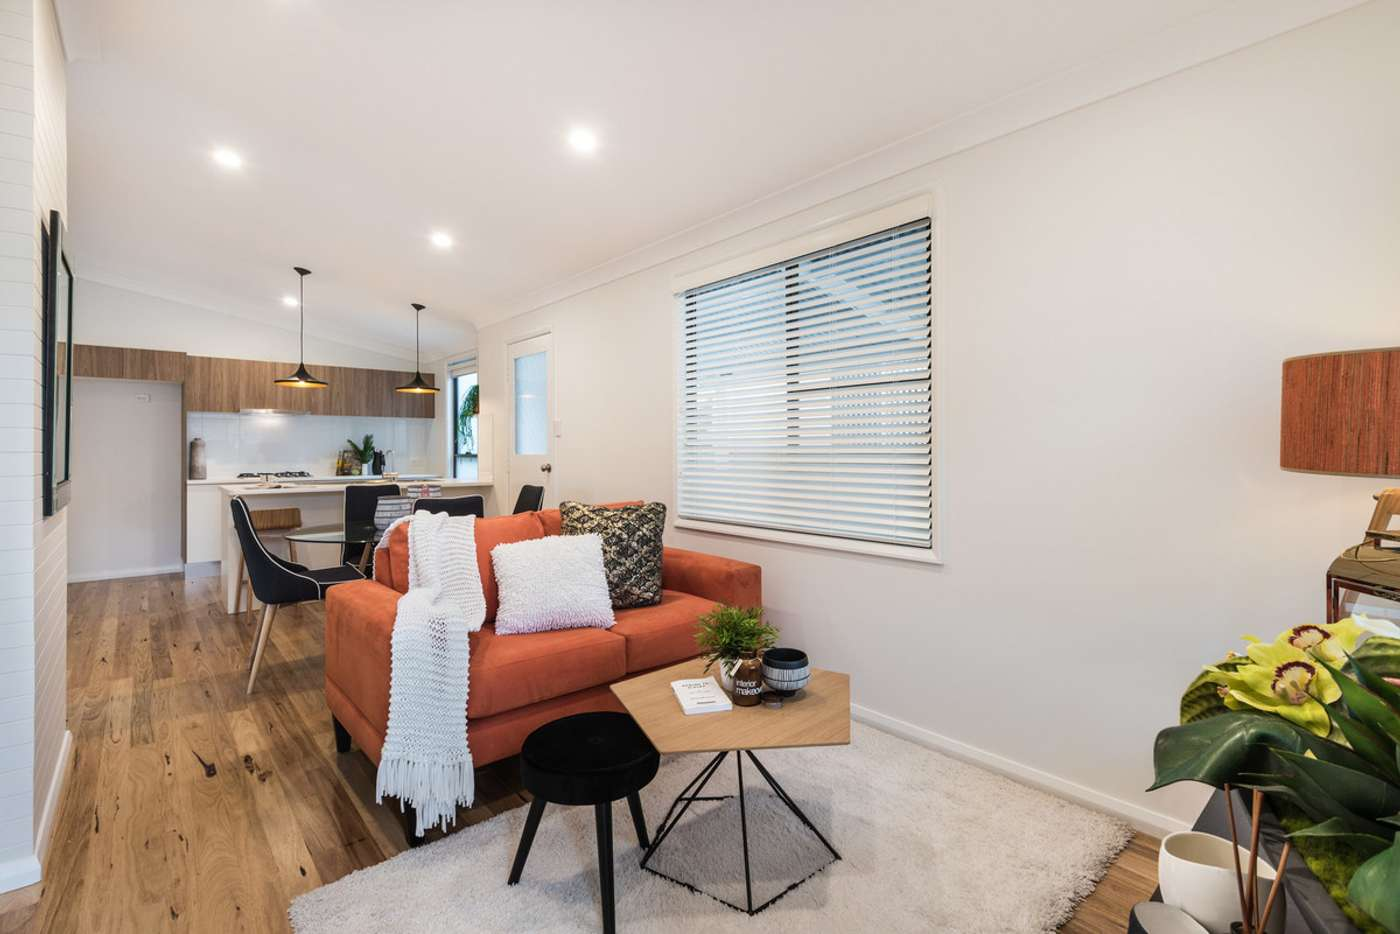 Main view of Homely other listing, 25/437 Wards Hill Road, Empire Bay NSW 2257